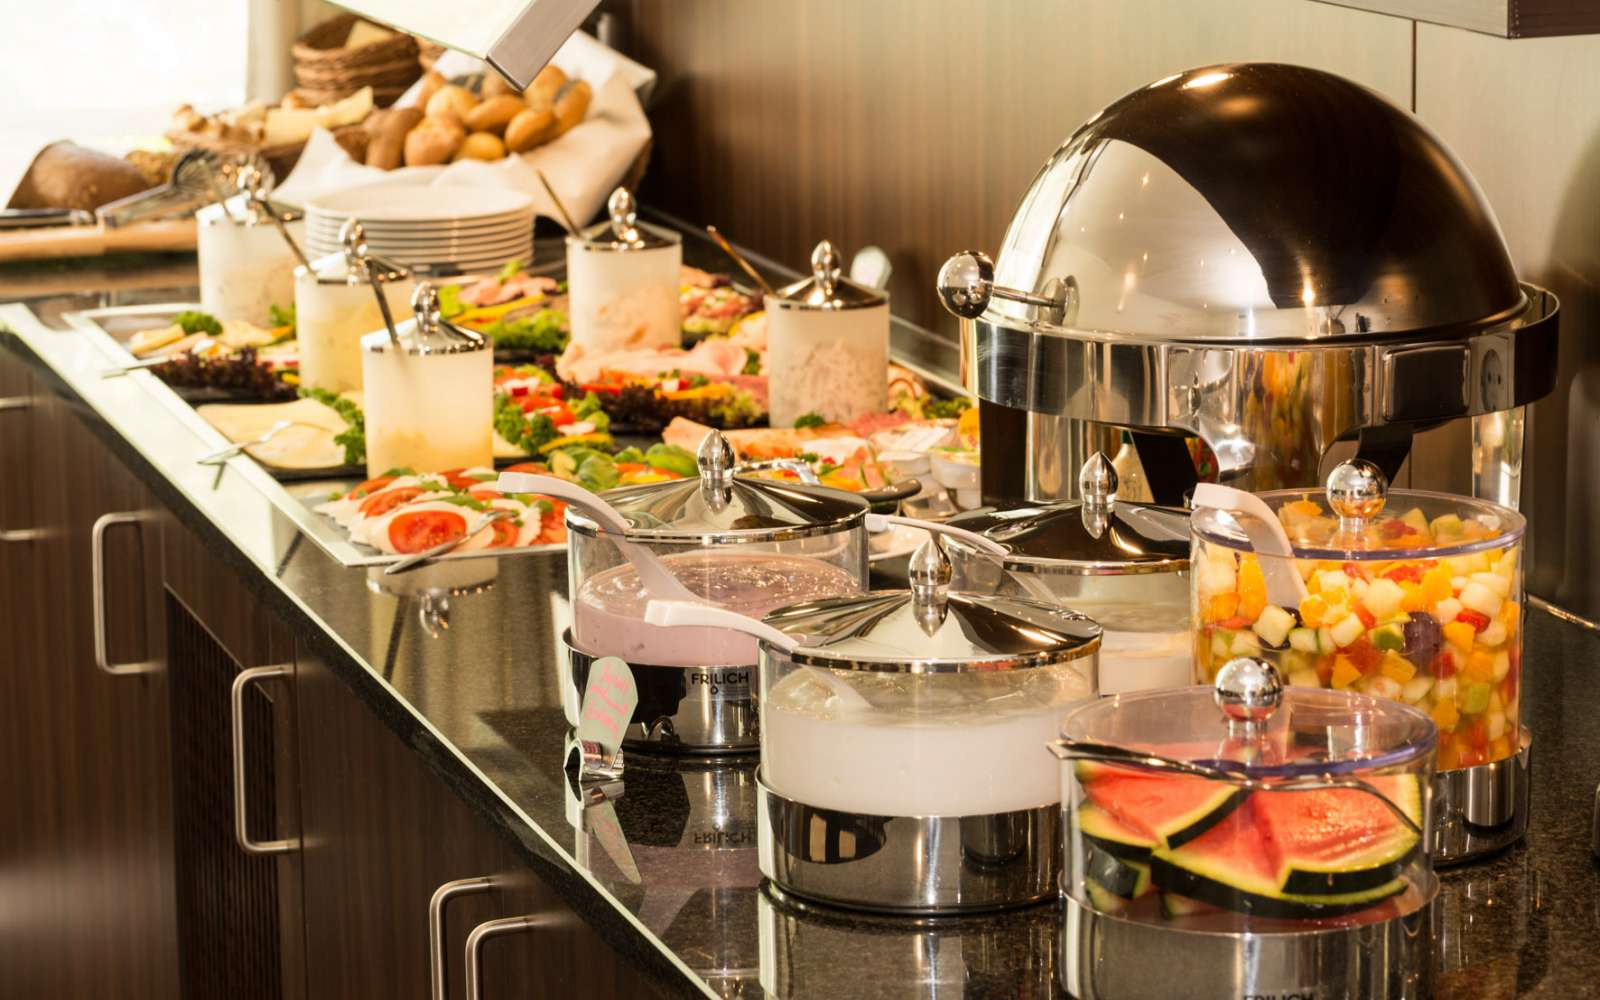 Heikotel   Hotel Windsor   Buffet Windsor 06 2015 6757